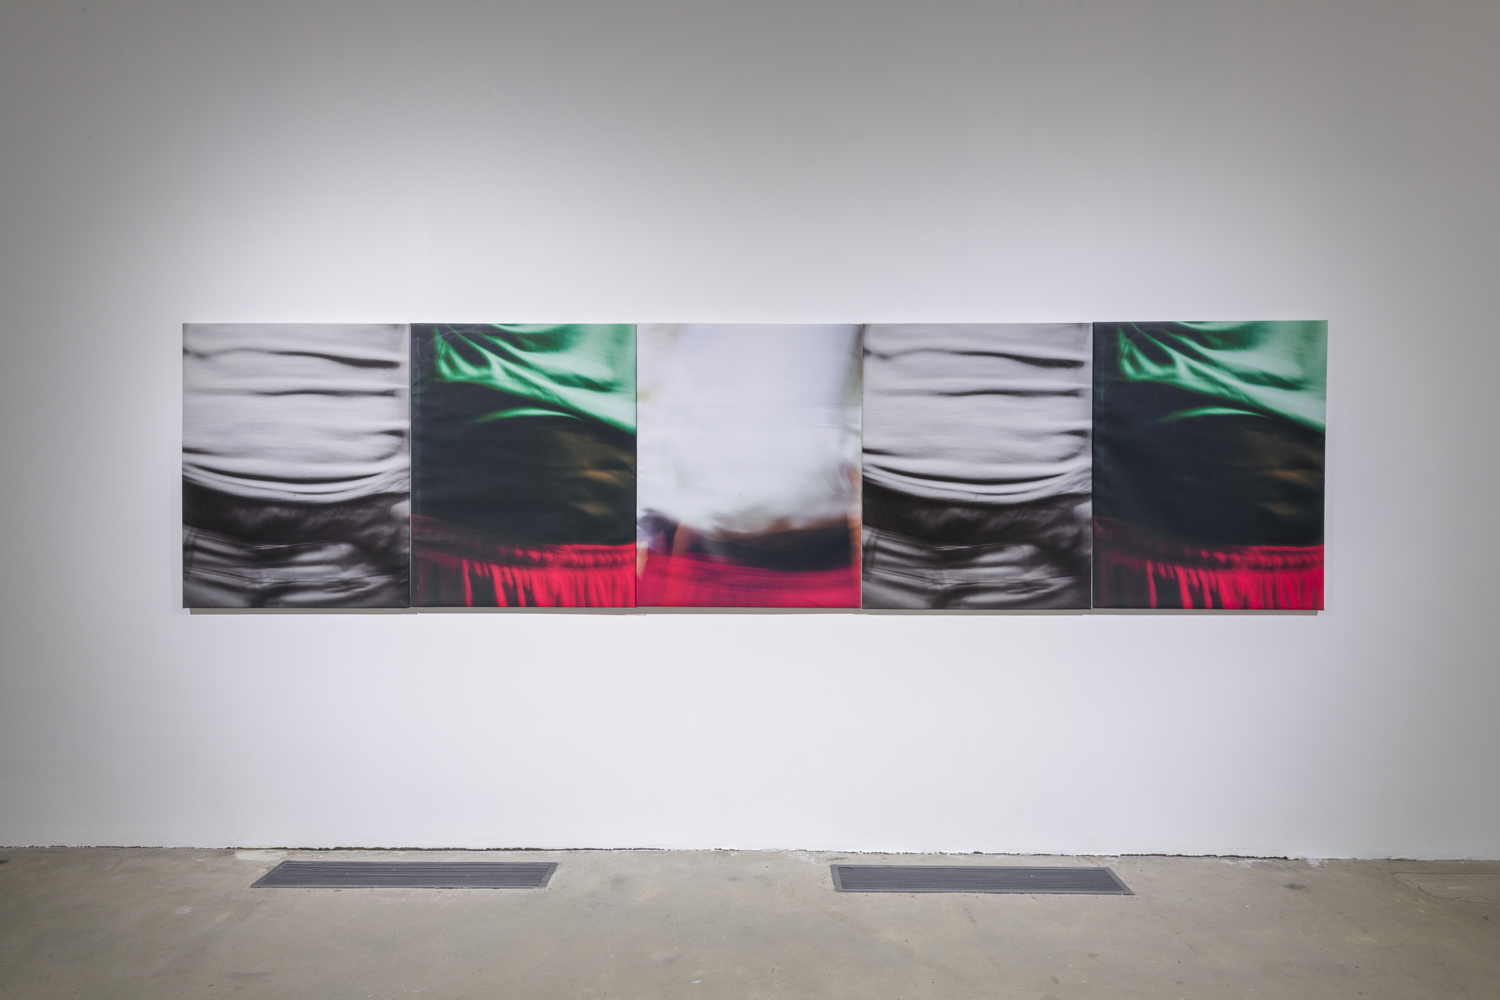 David Alekhuogie, installation image, February 14 - April 14, 2019, photograph by Jeff McLane